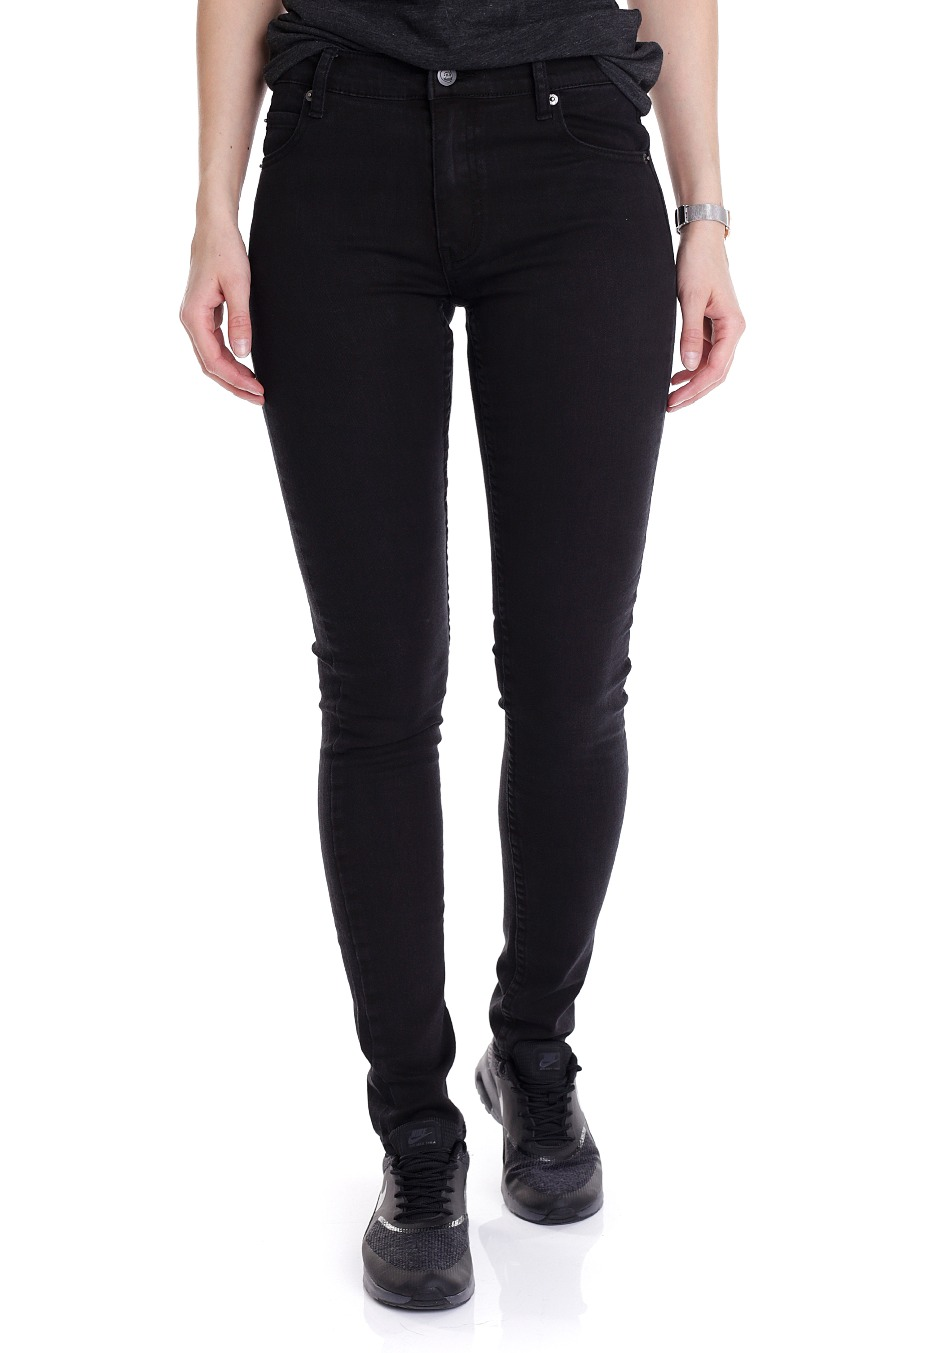 Cheap Monday Tight New Black Jeans Impericon Com Worldwide